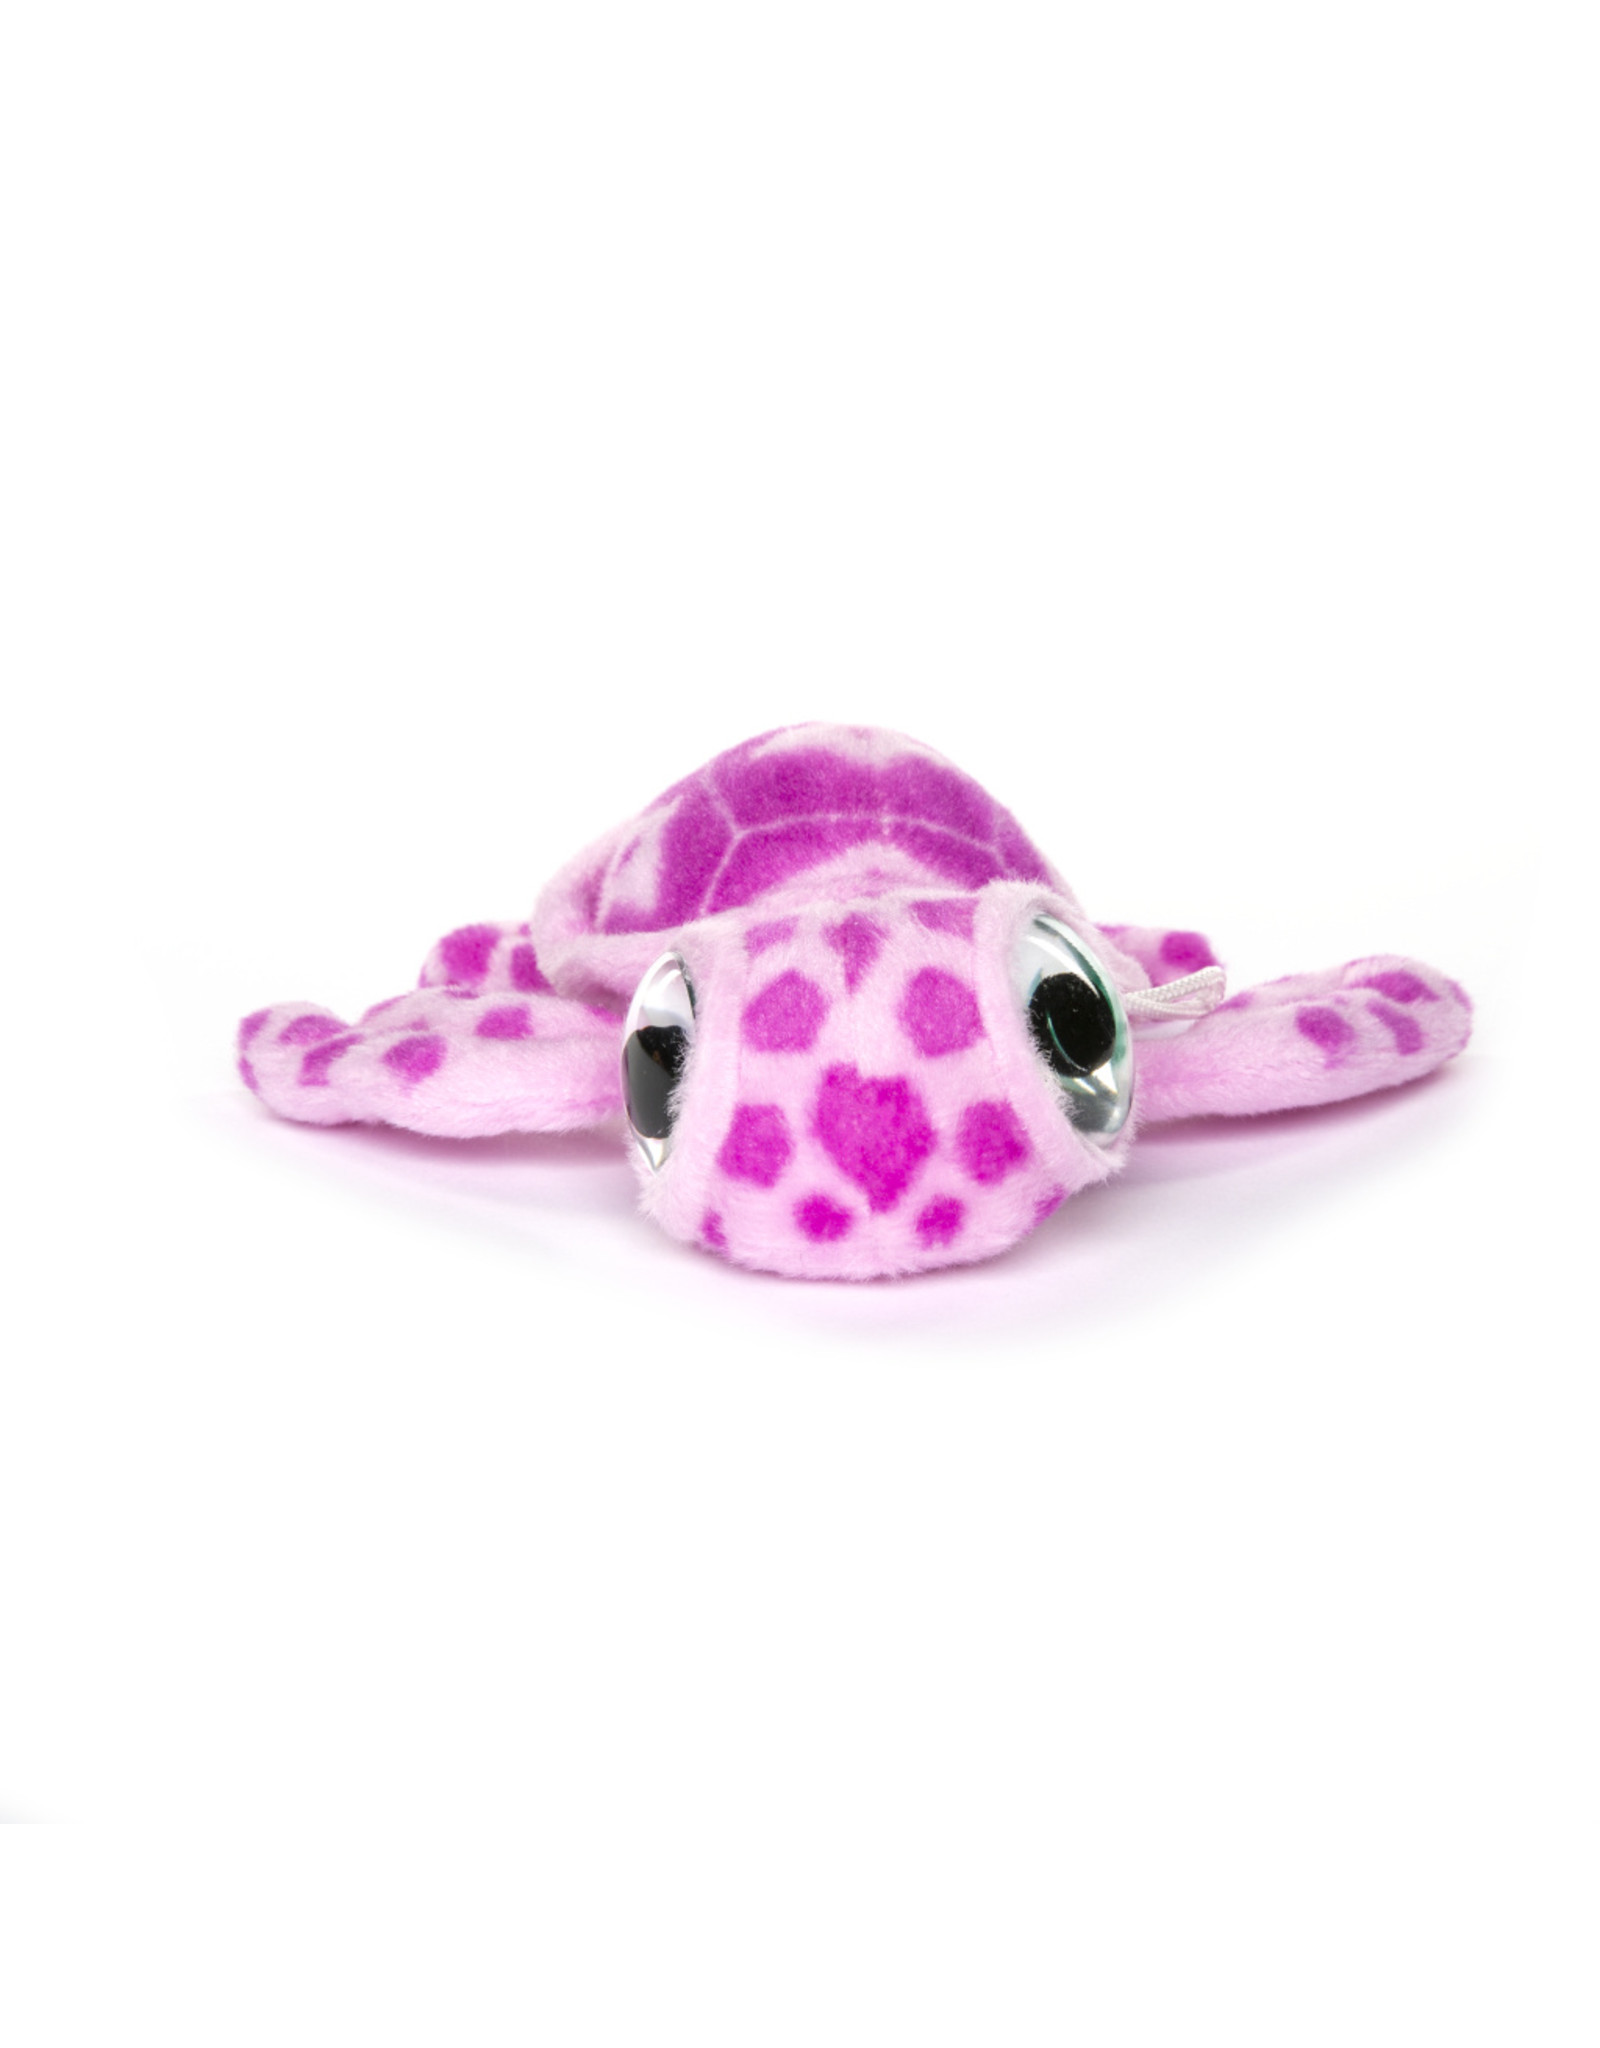 Mini Sea Turtle Plush - Assorted Colors